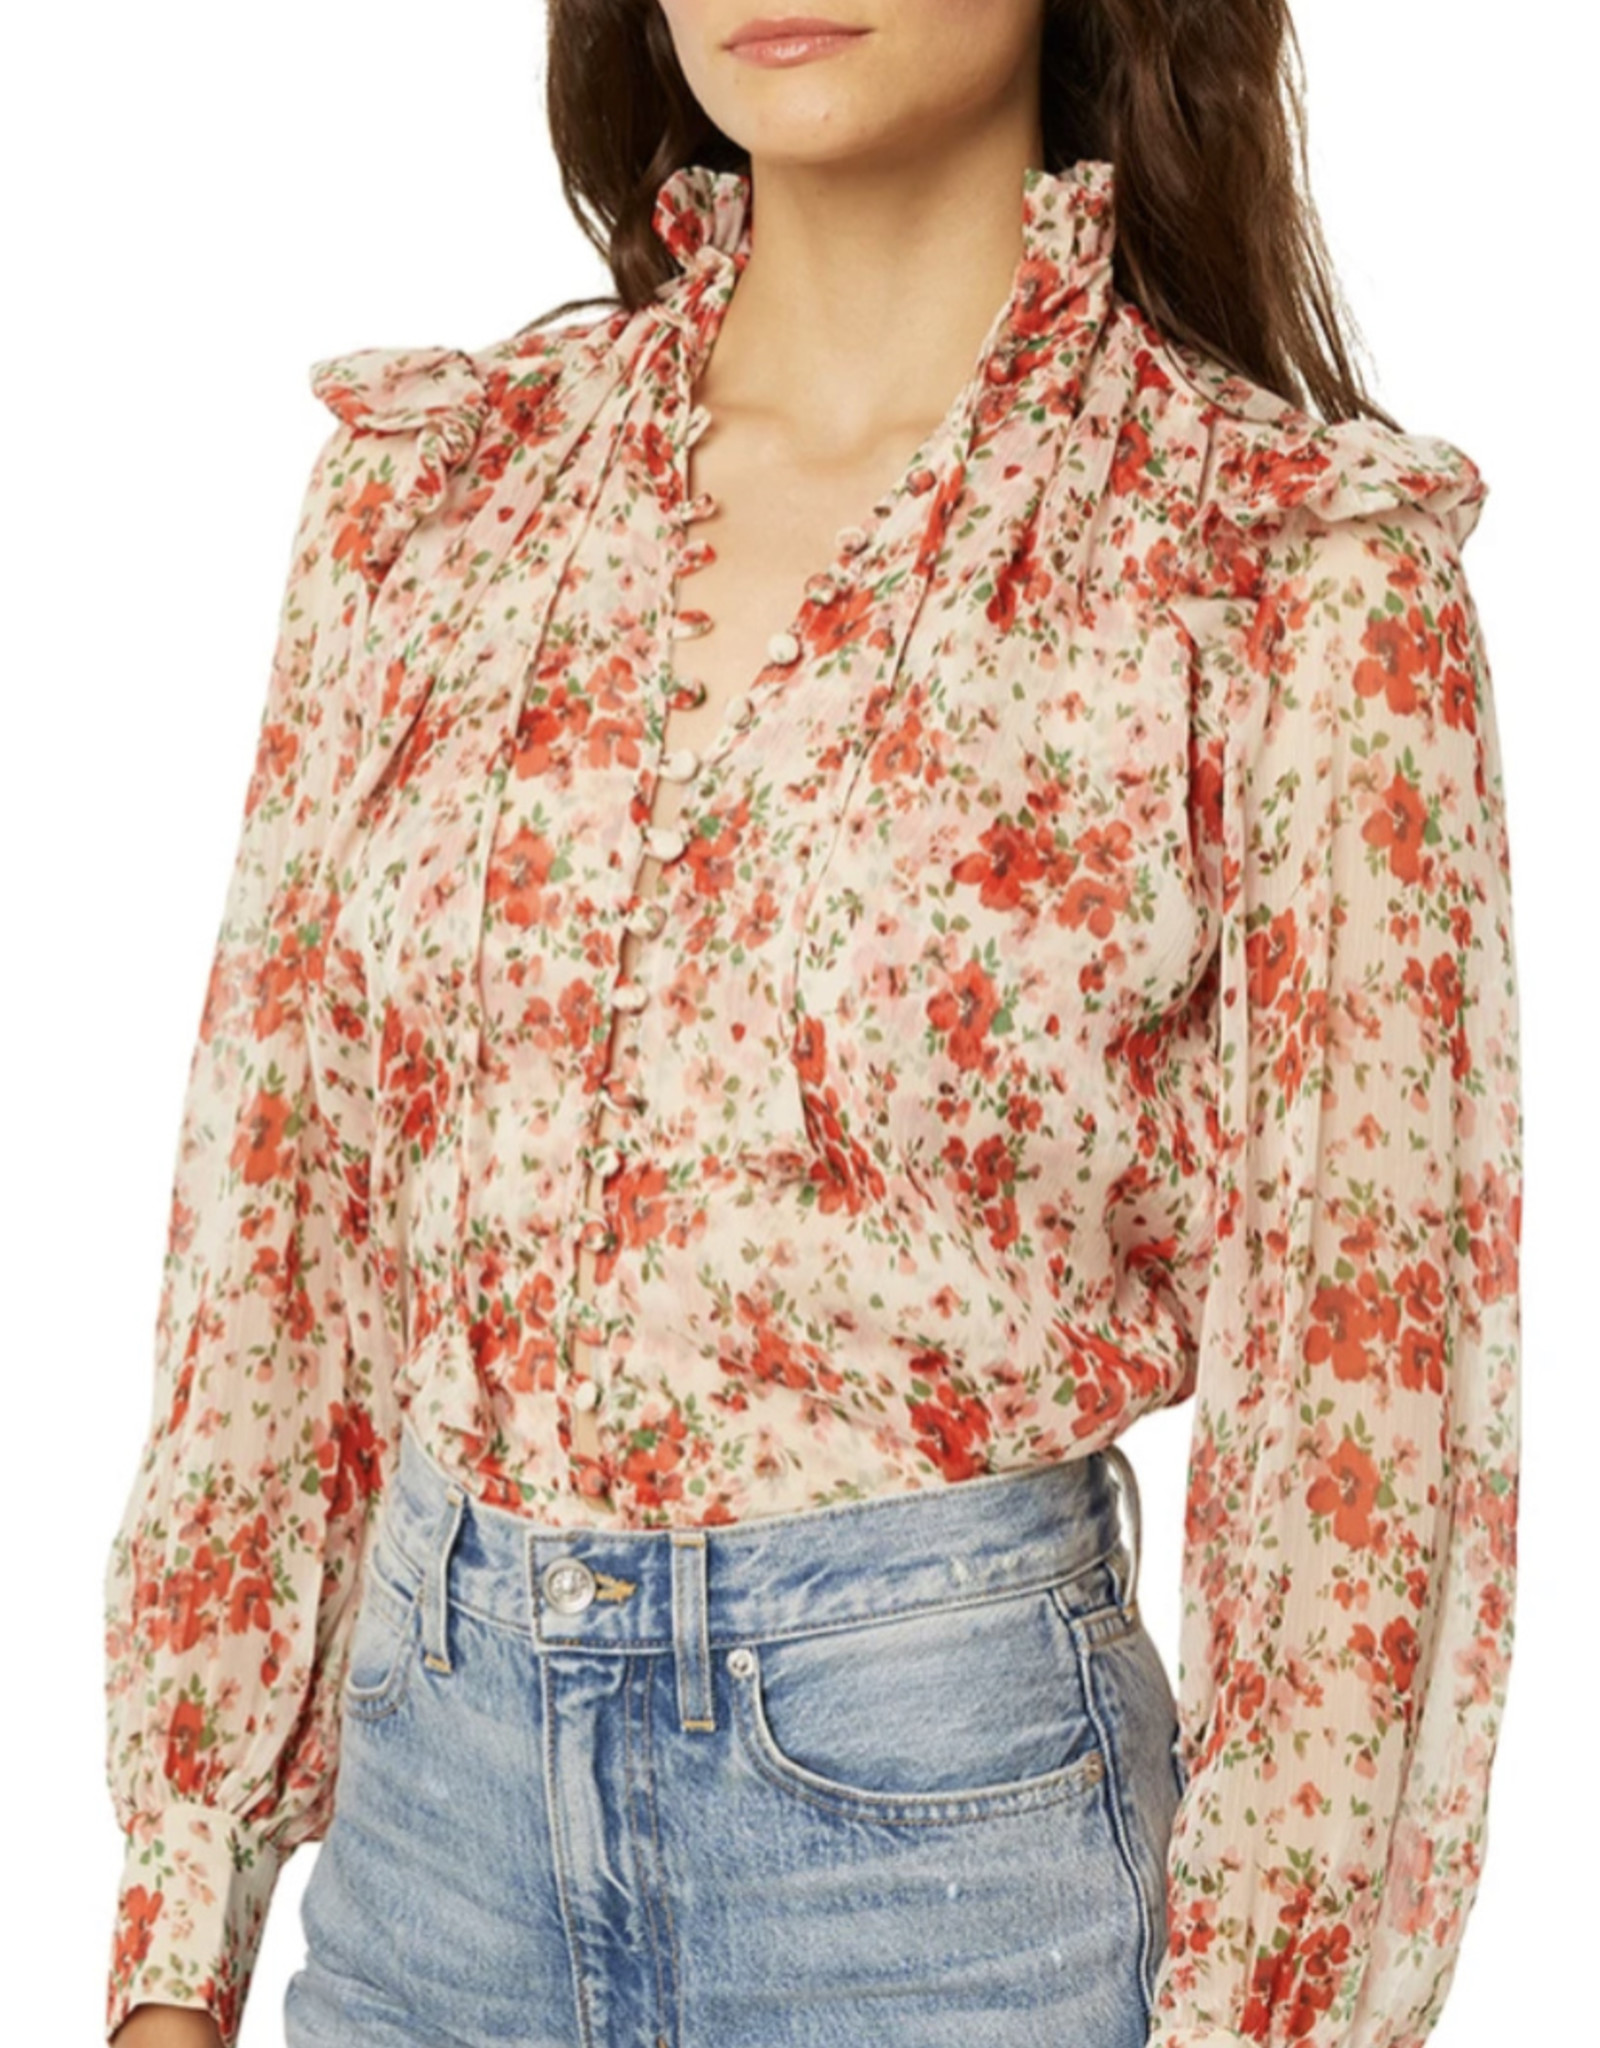 MISA Analeigh Top